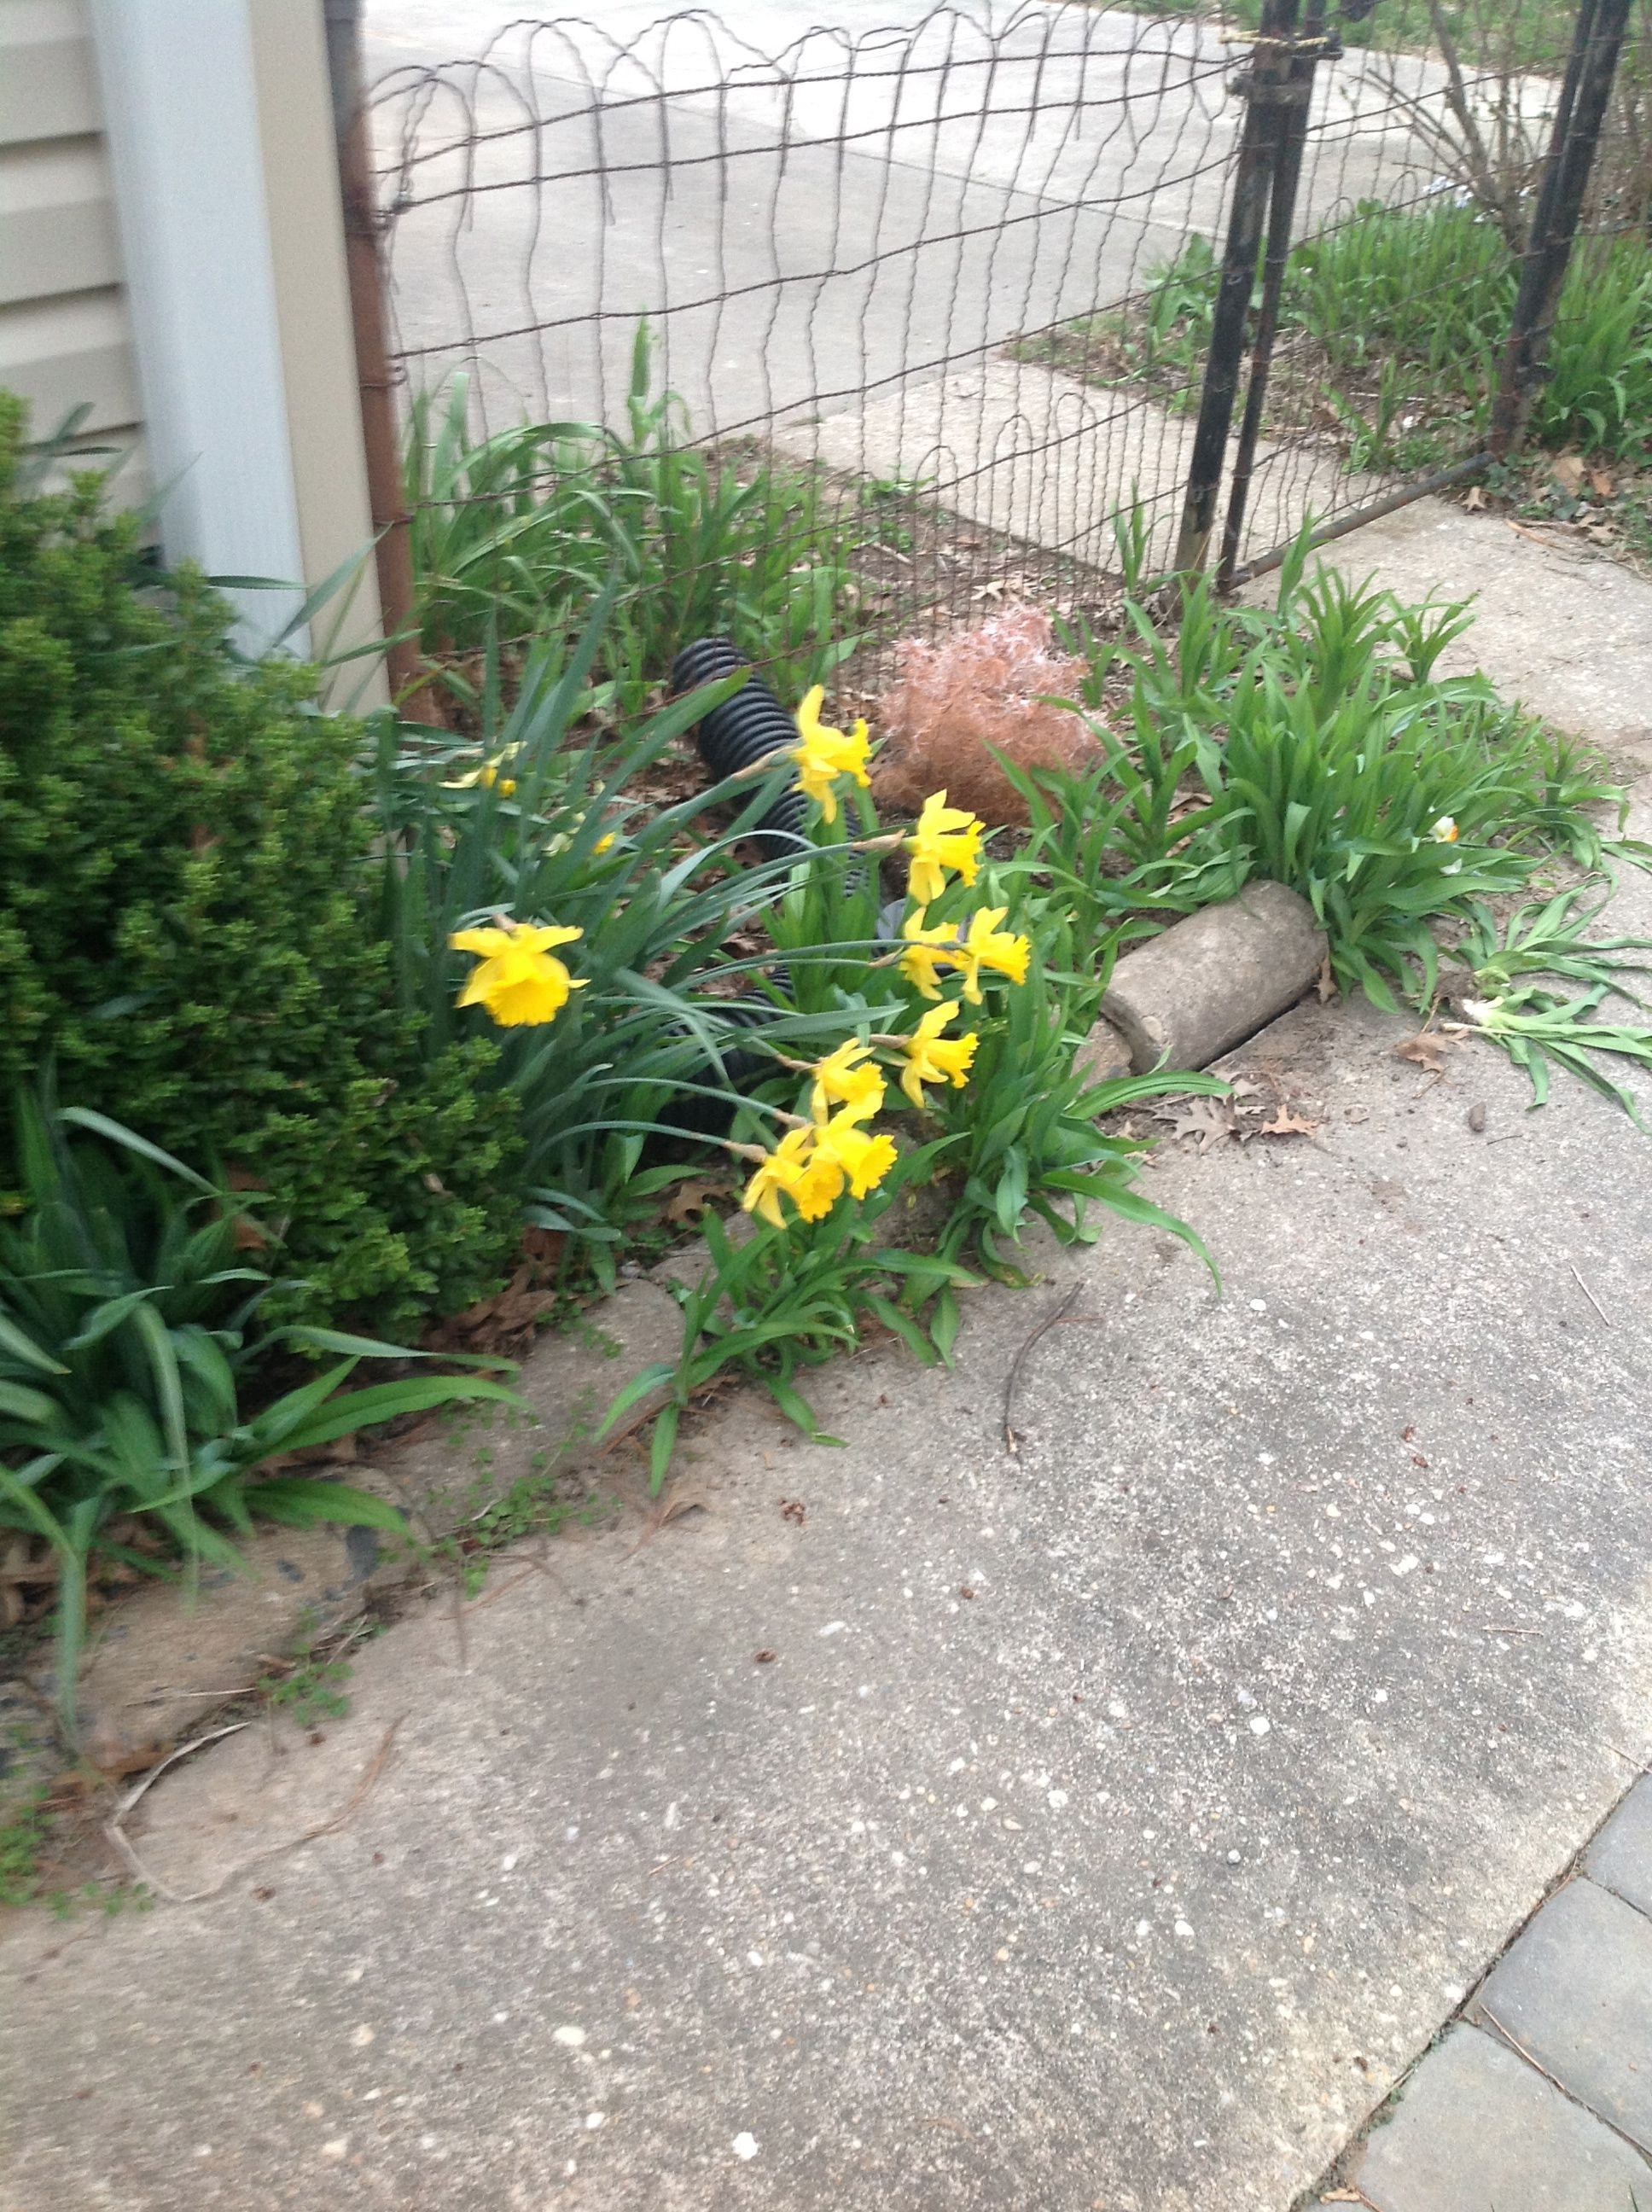 Daffodils at the in-laws this March , where I resided while these jewels were arriving